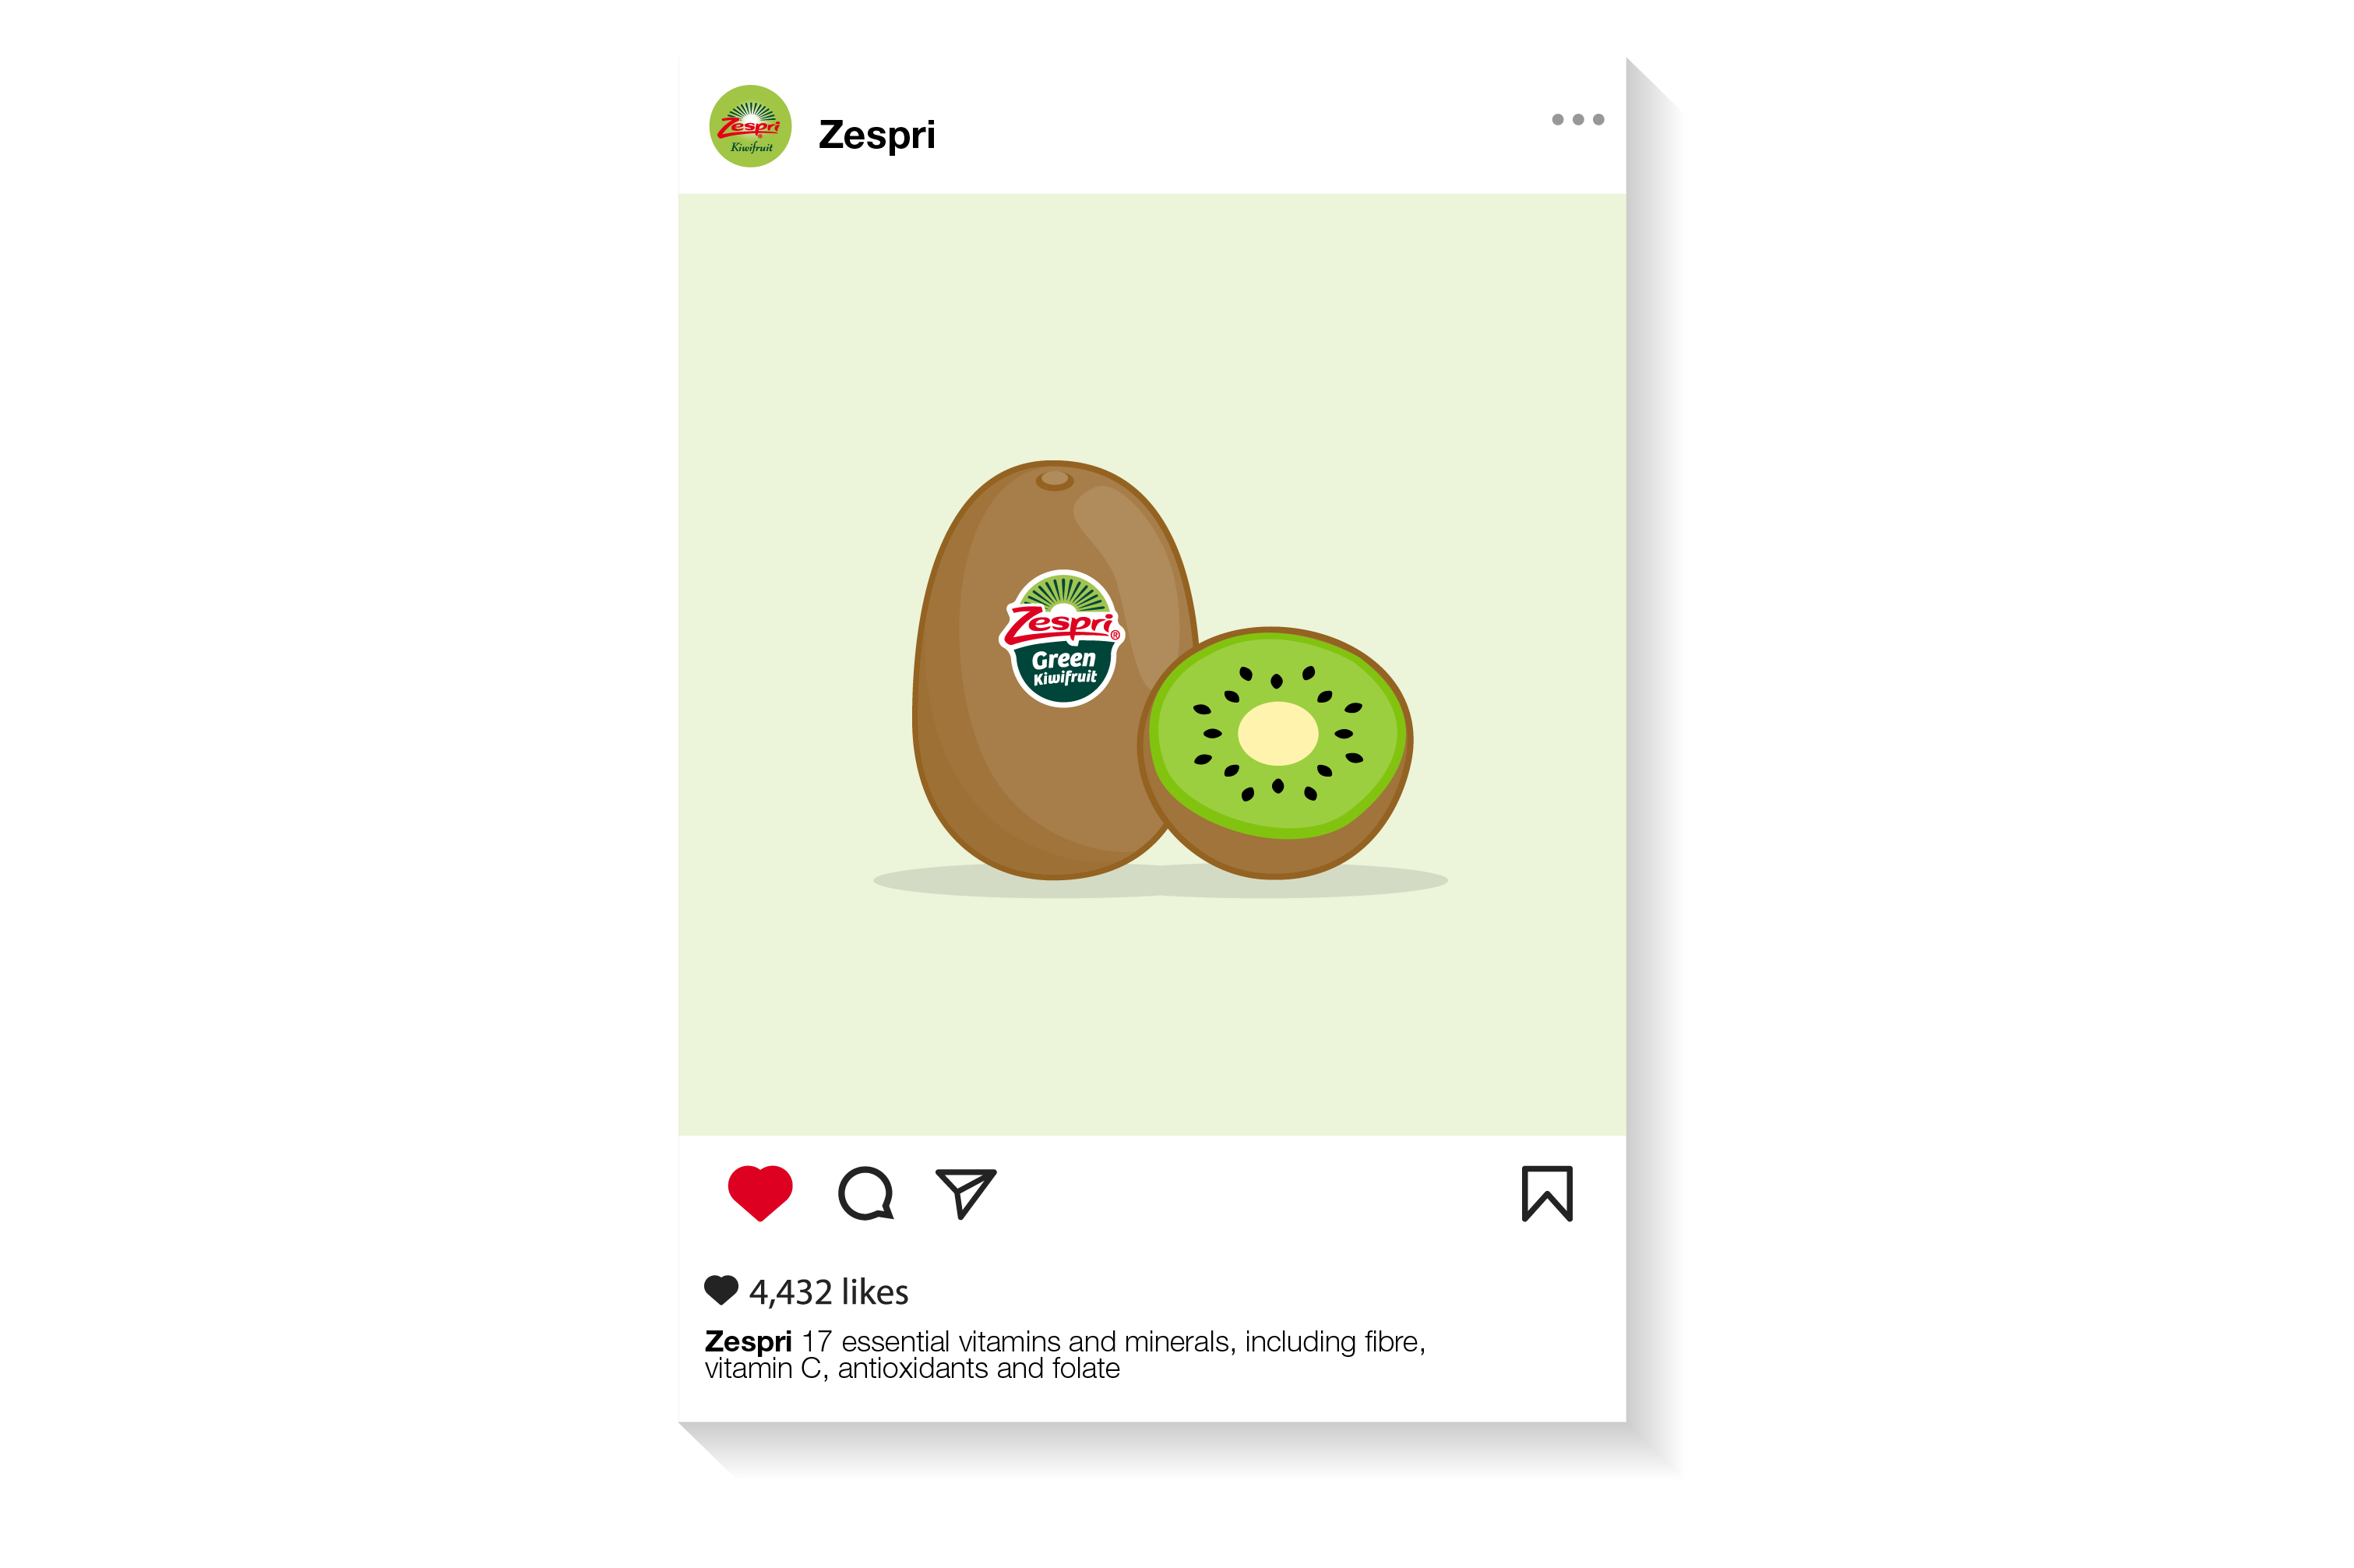 Zespri_Green_kiwifruit_love.png